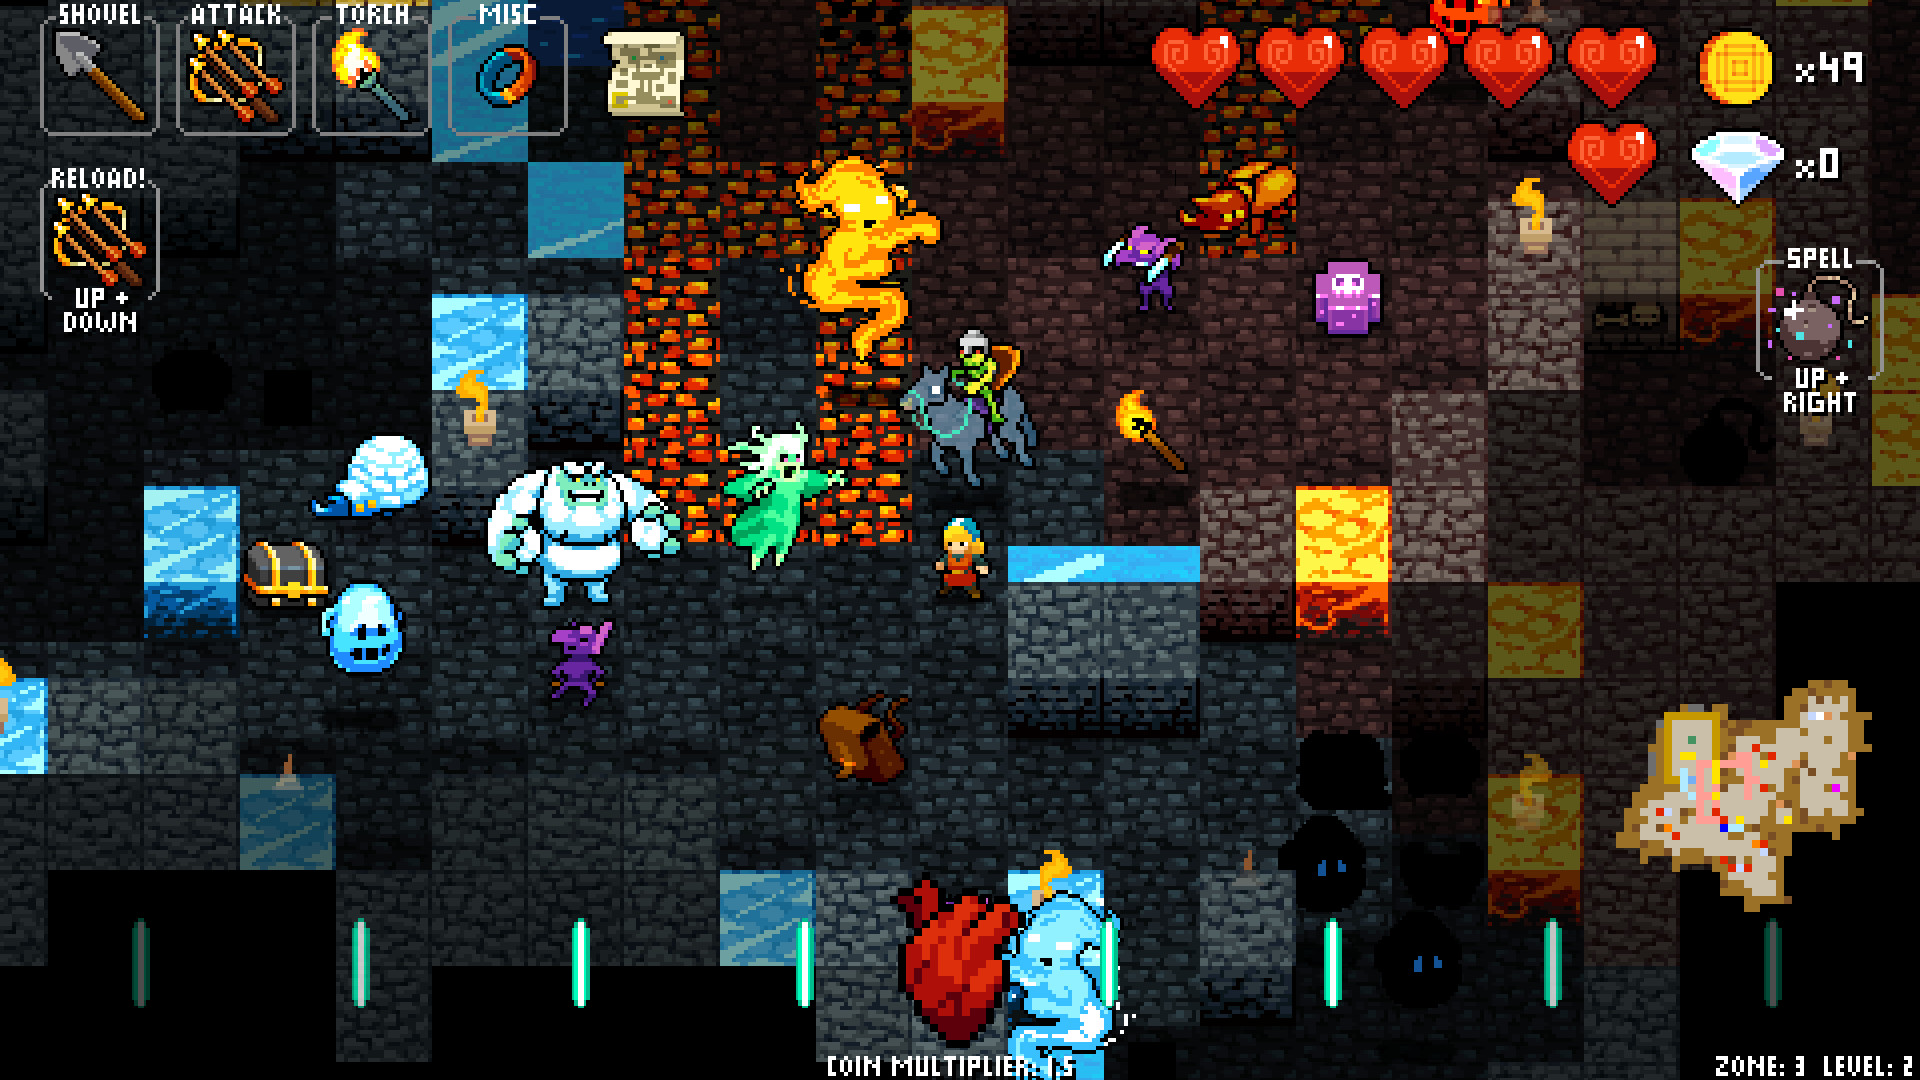 crypt_of_the_necrodancer_roguelike_for_linux_mac_windows_pc_screenshot2